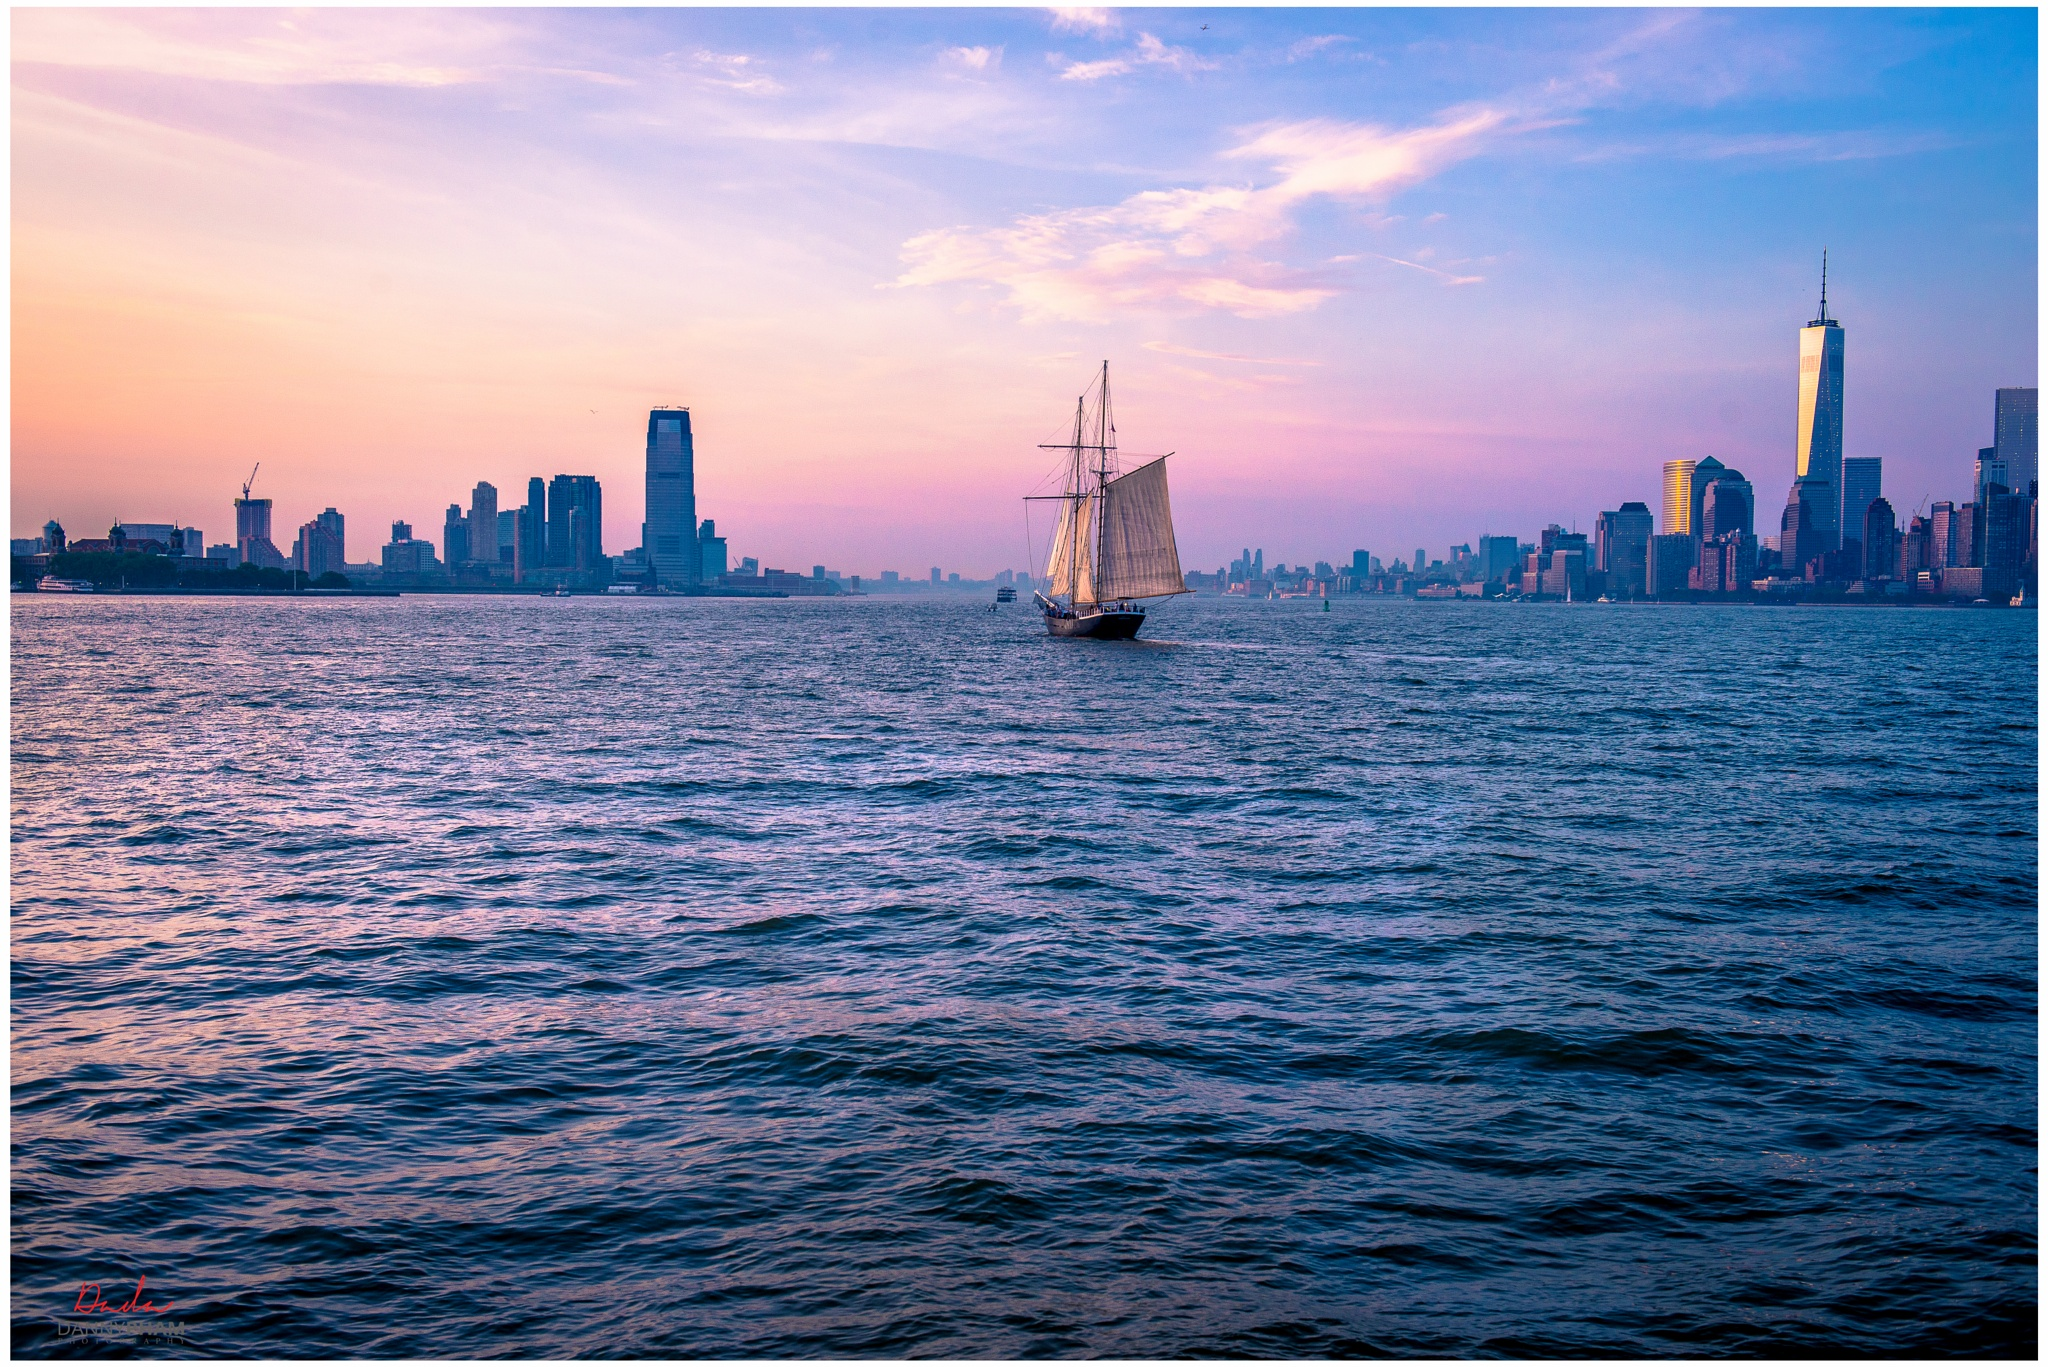 Sailing into Sunset @ Hudson River! New York City & Jersey City back ground by Danny Pham